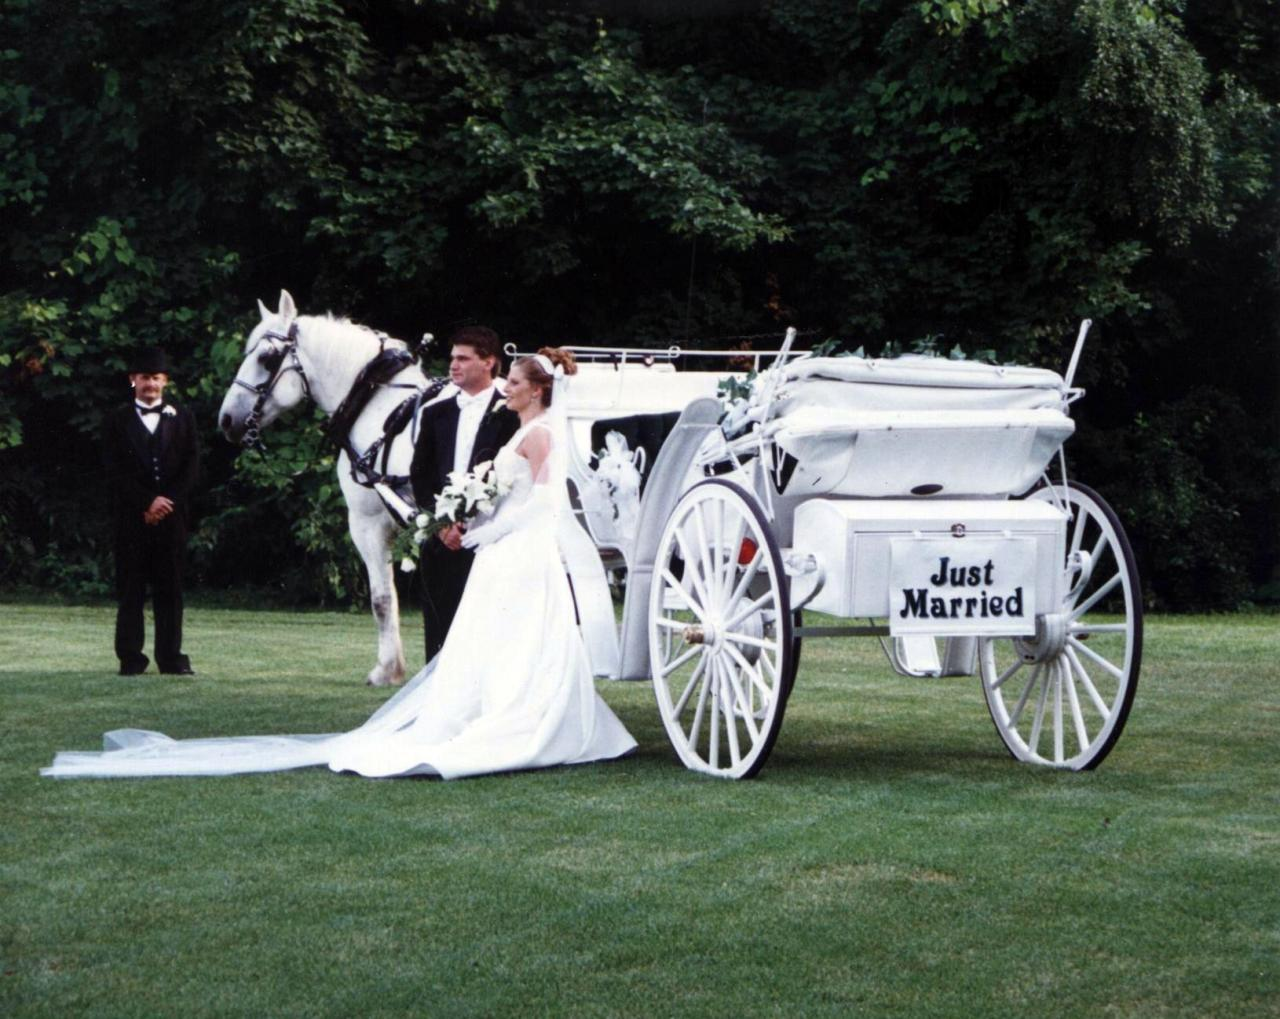 Jim Beckys Horse And Carriage Service Of Peotone IL CREATE